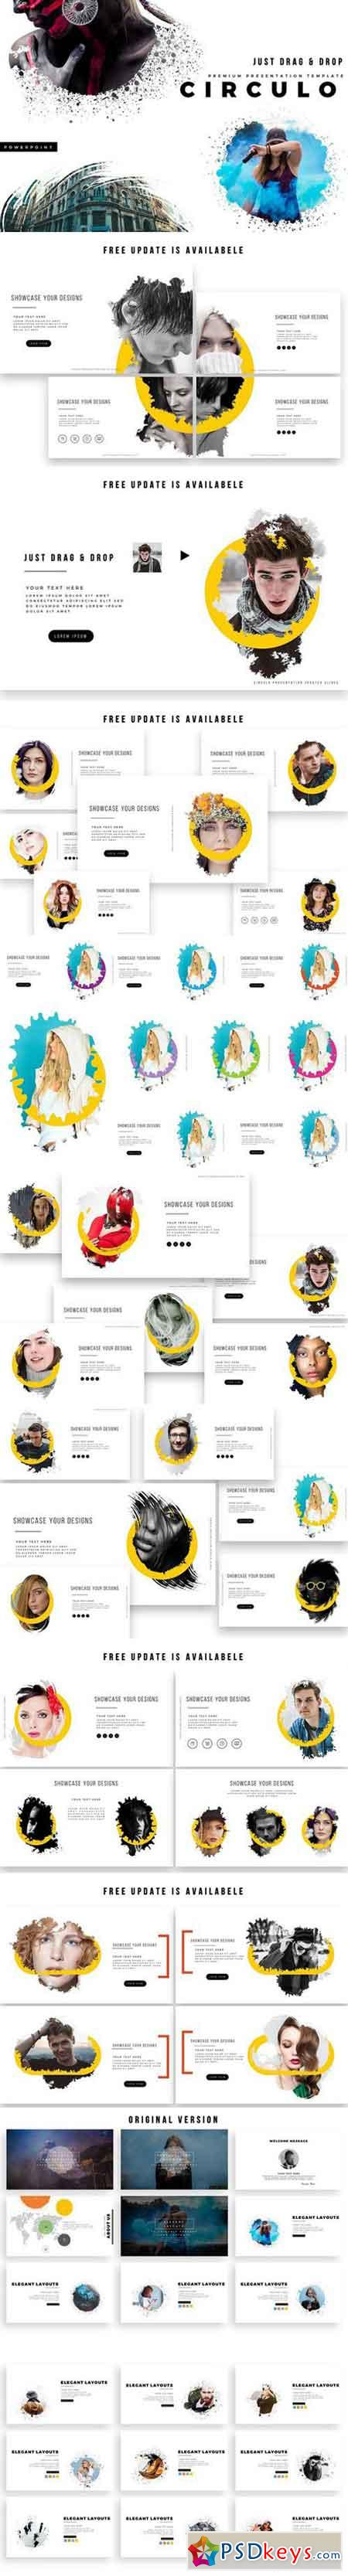 CIRCULO PowerPoint Template 1757474